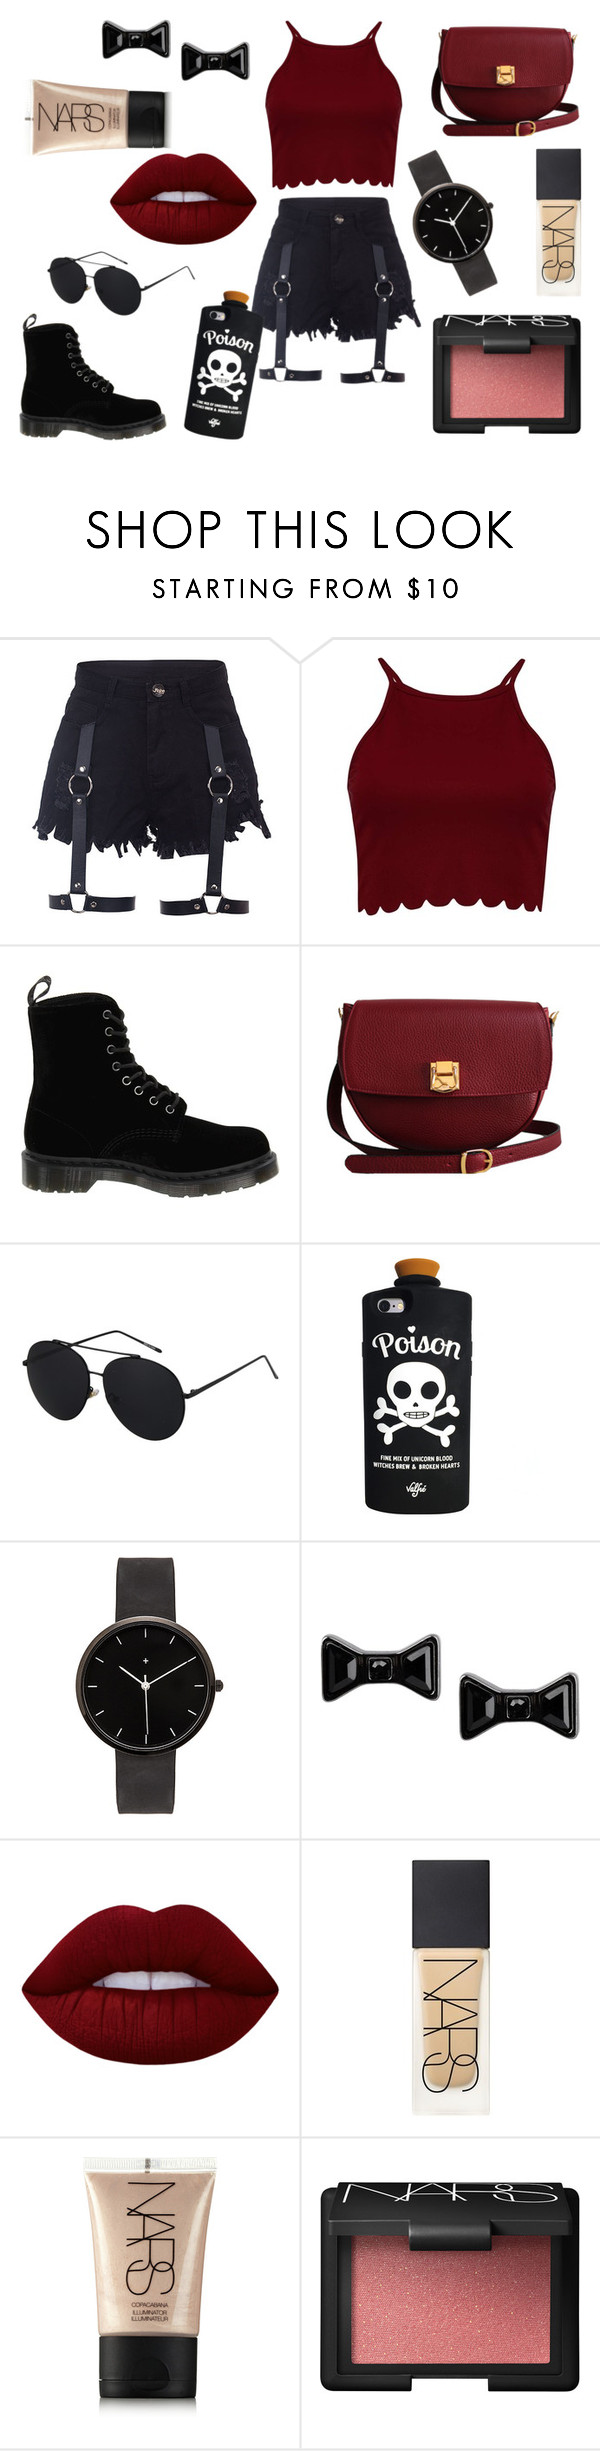 """Untitled #158"" by sarahb-17 ❤ liked on Polyvore featuring Dr. Martens, The Code, Valfré, I Love Ugly, Marc by Marc Jacobs, Lime Crime and NARS Cosmetics"